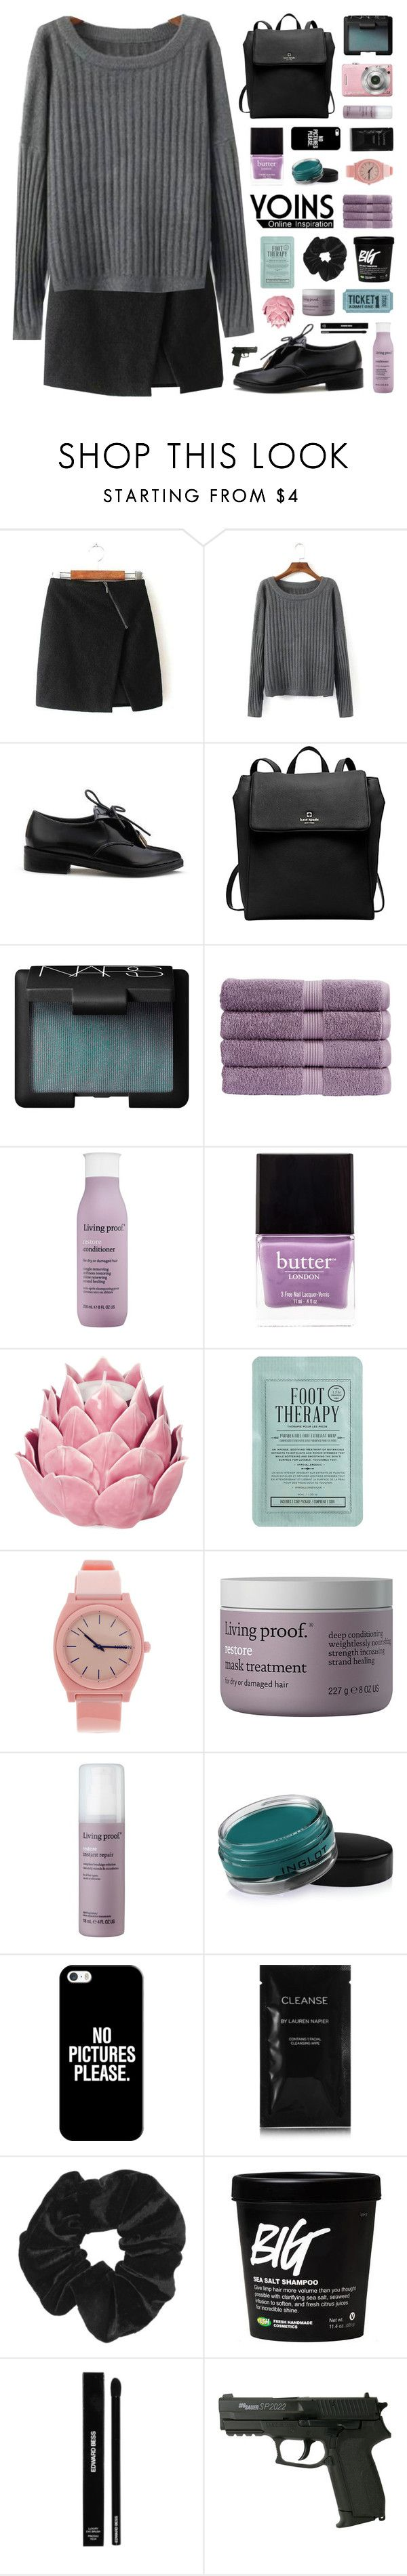 Zara home to open in toronto -  Yoins 7 By Novalikarida Liked On Polyvore Featuring Kate Spade Nars Cosmetics